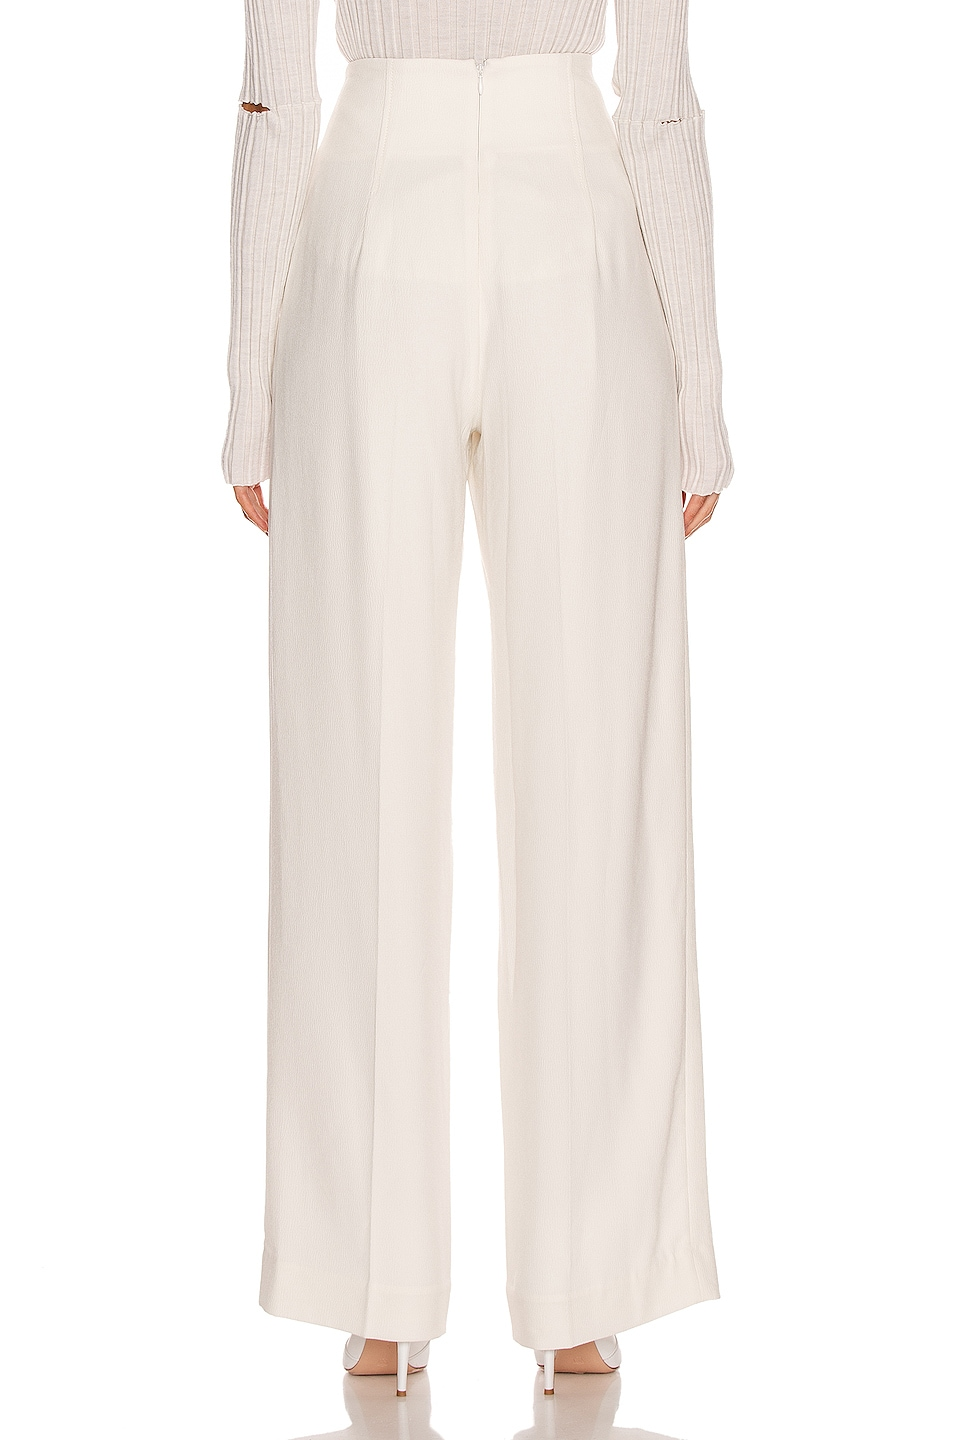 Image 3 of Proenza Schouler High Waisted Pant in White